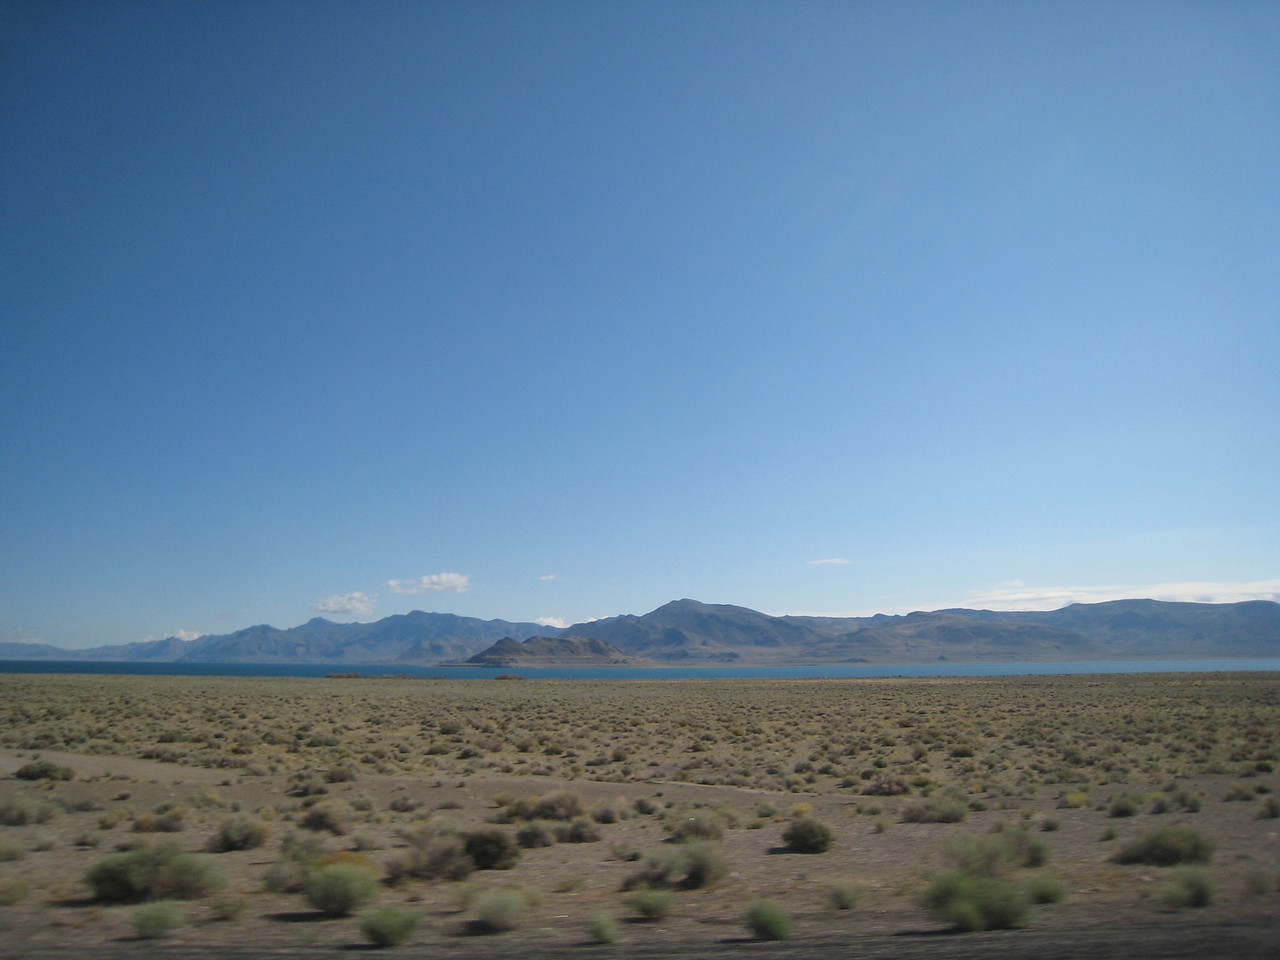 Some of the shapes that give Pyramid Lake its name.